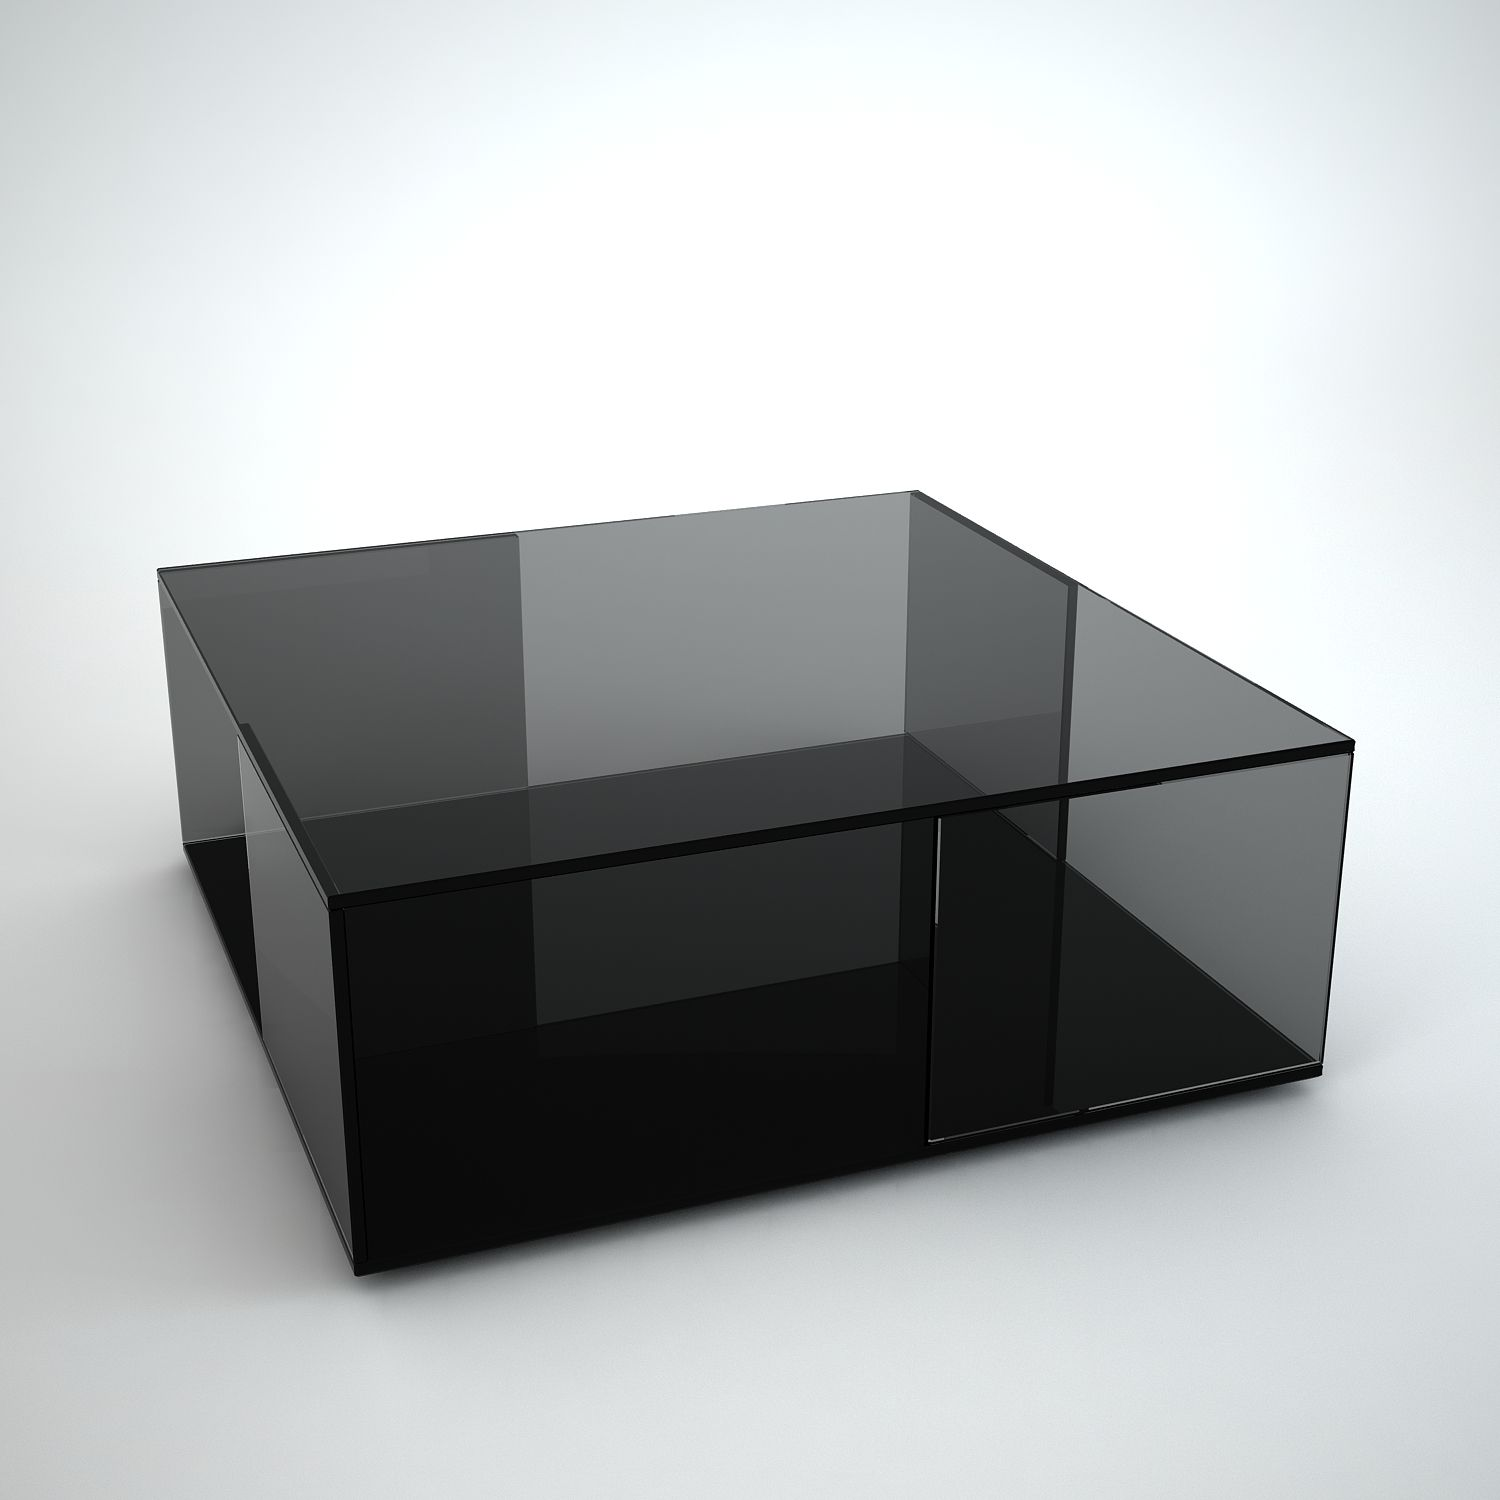 Square black glass coffee table - Tifino Square Grey Tint Glass Coffee Table By Klarity